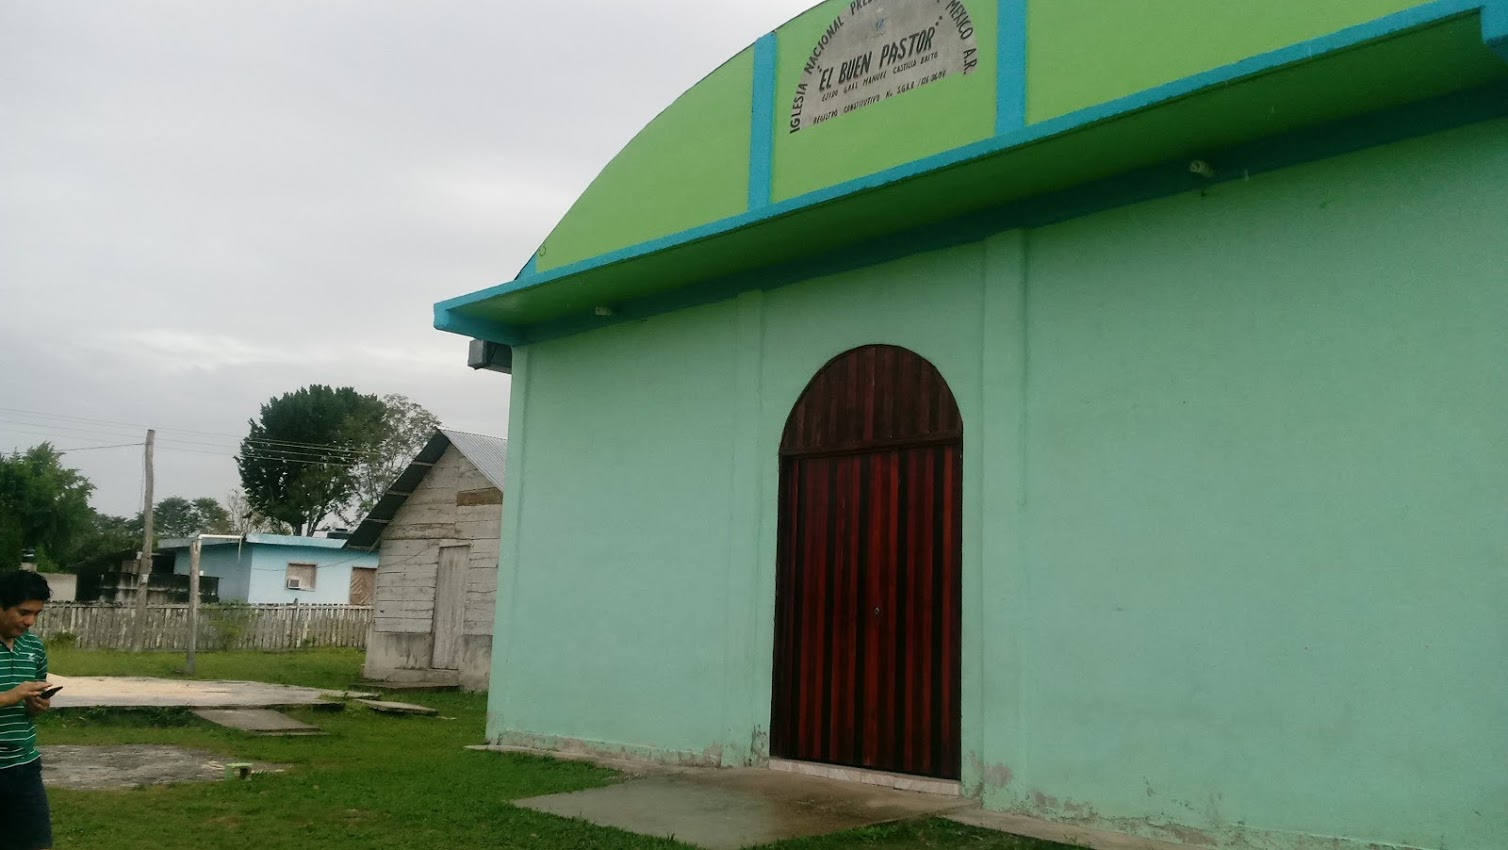 Good Shepherd Presbyterian Church, where Victor and Raul and members and officers